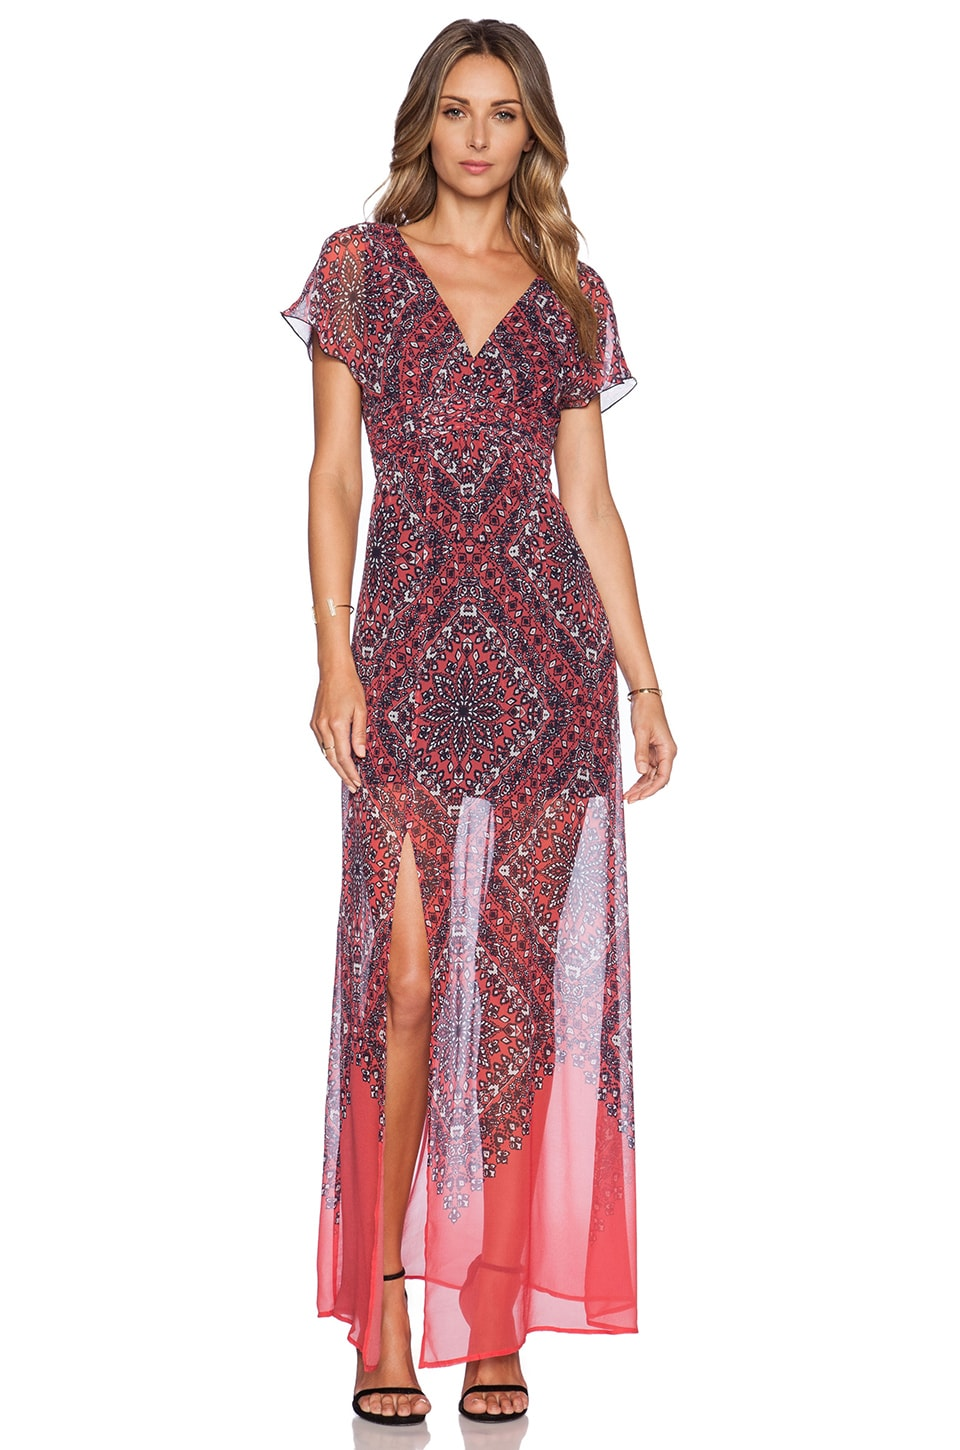 77628f4c2fd3 Twelfth Street By Cynthia Vincent Vintage Maxi Dress in Coral Hankerchief